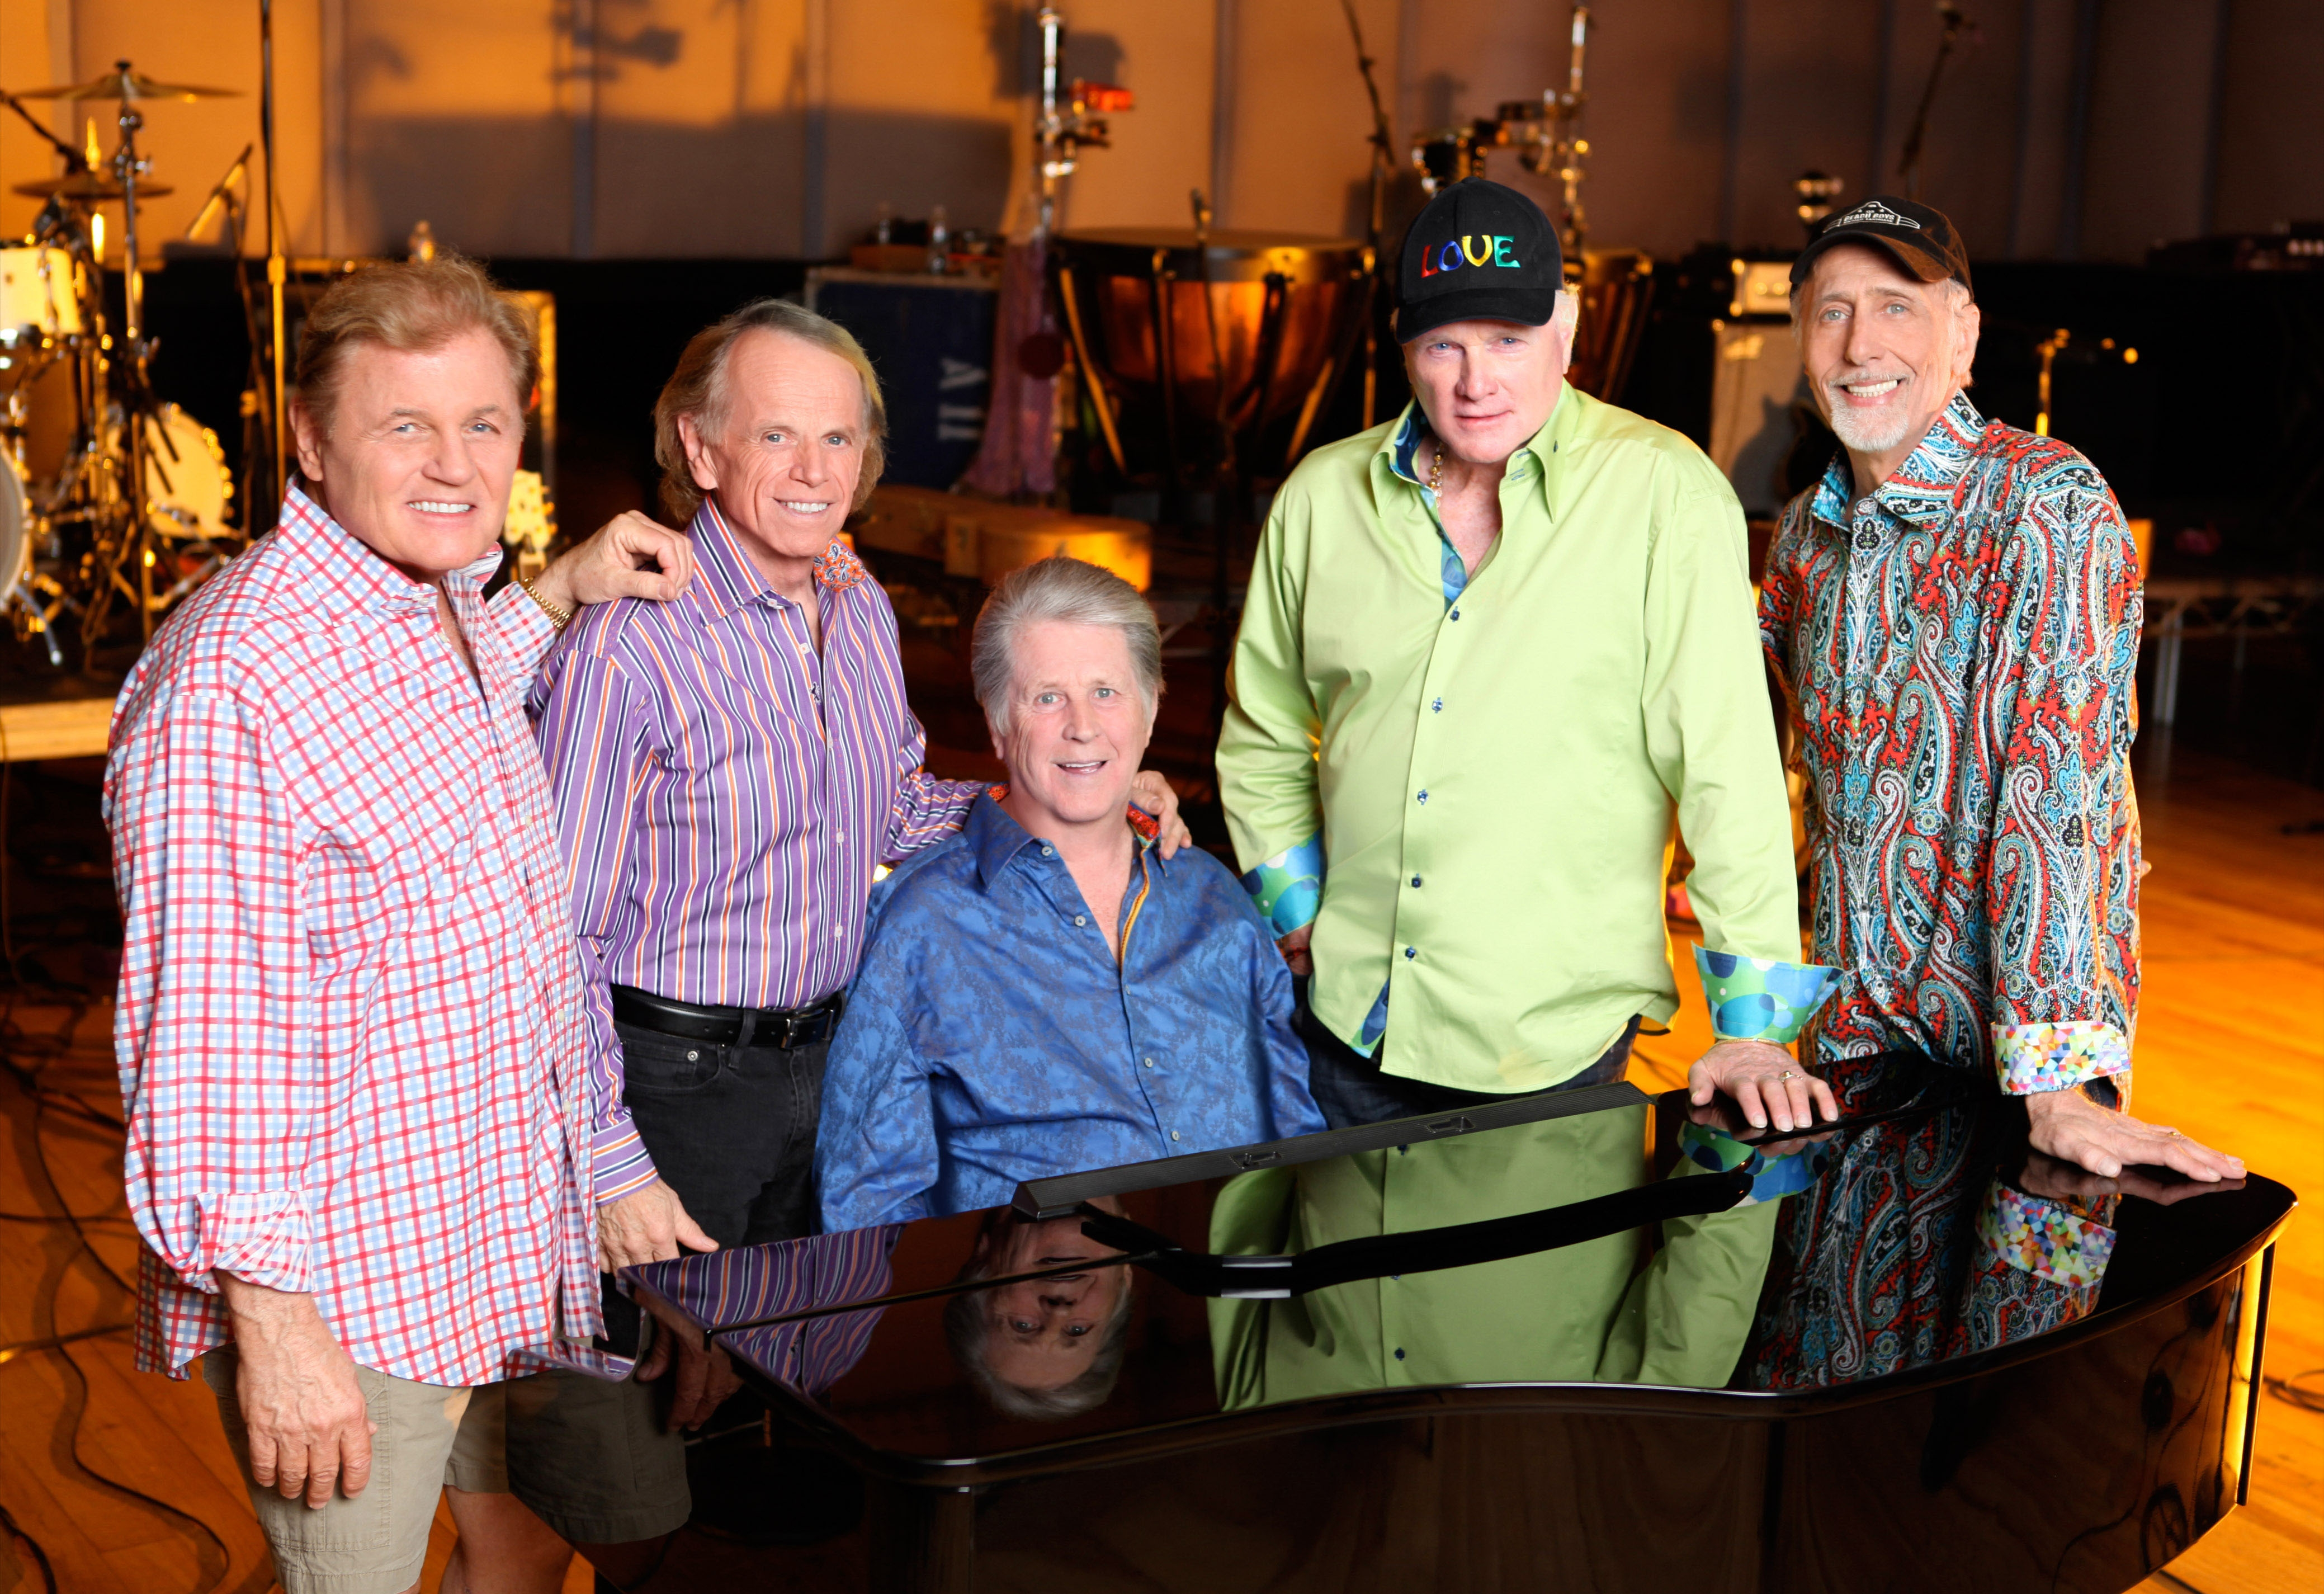 The Beach Boys hd